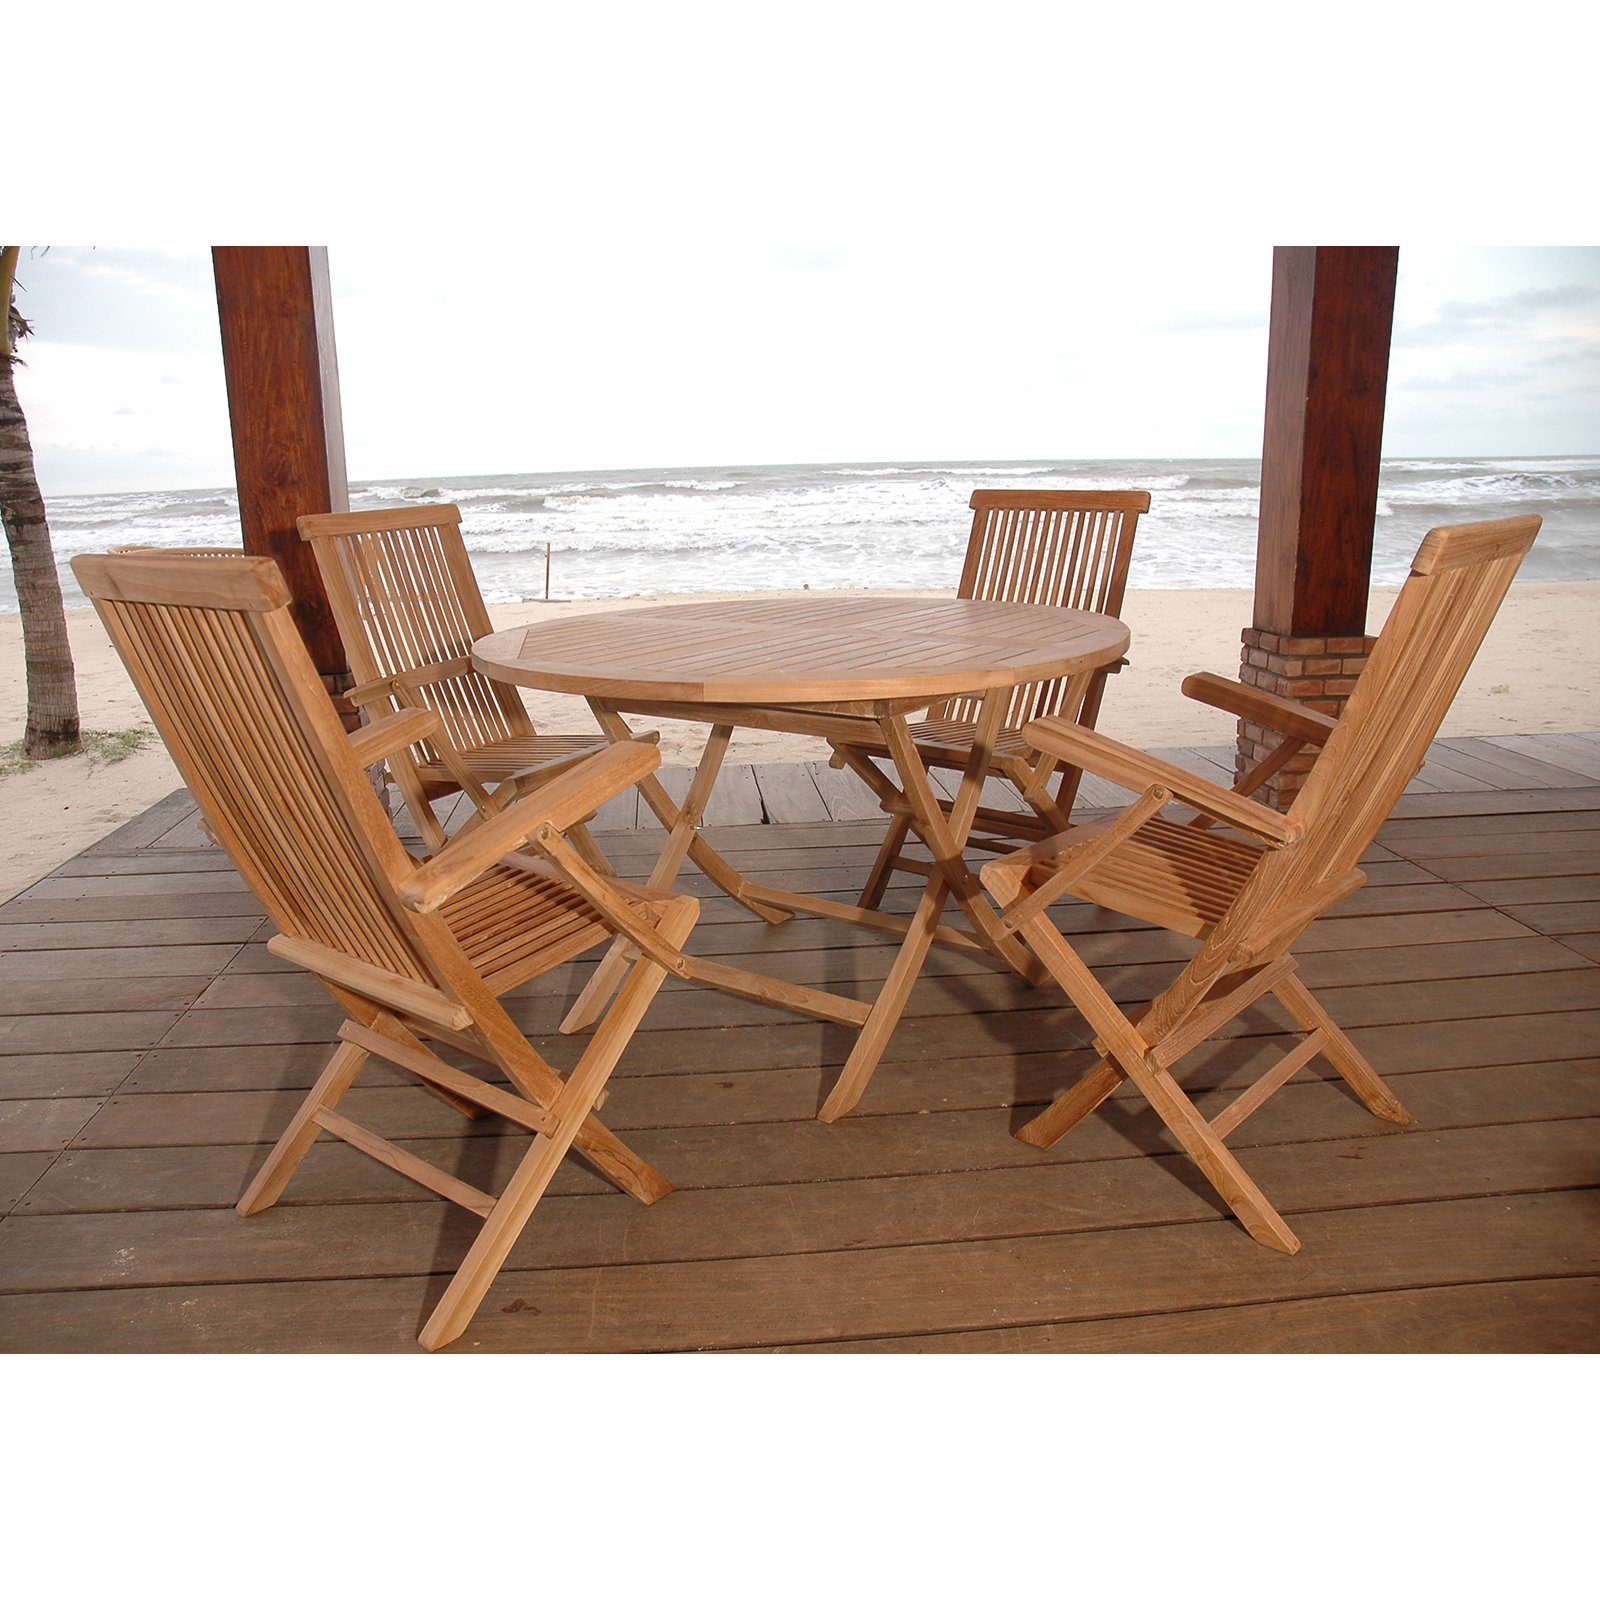 Anderson Teak Classic 5 Piece Folding Patio Dining Set